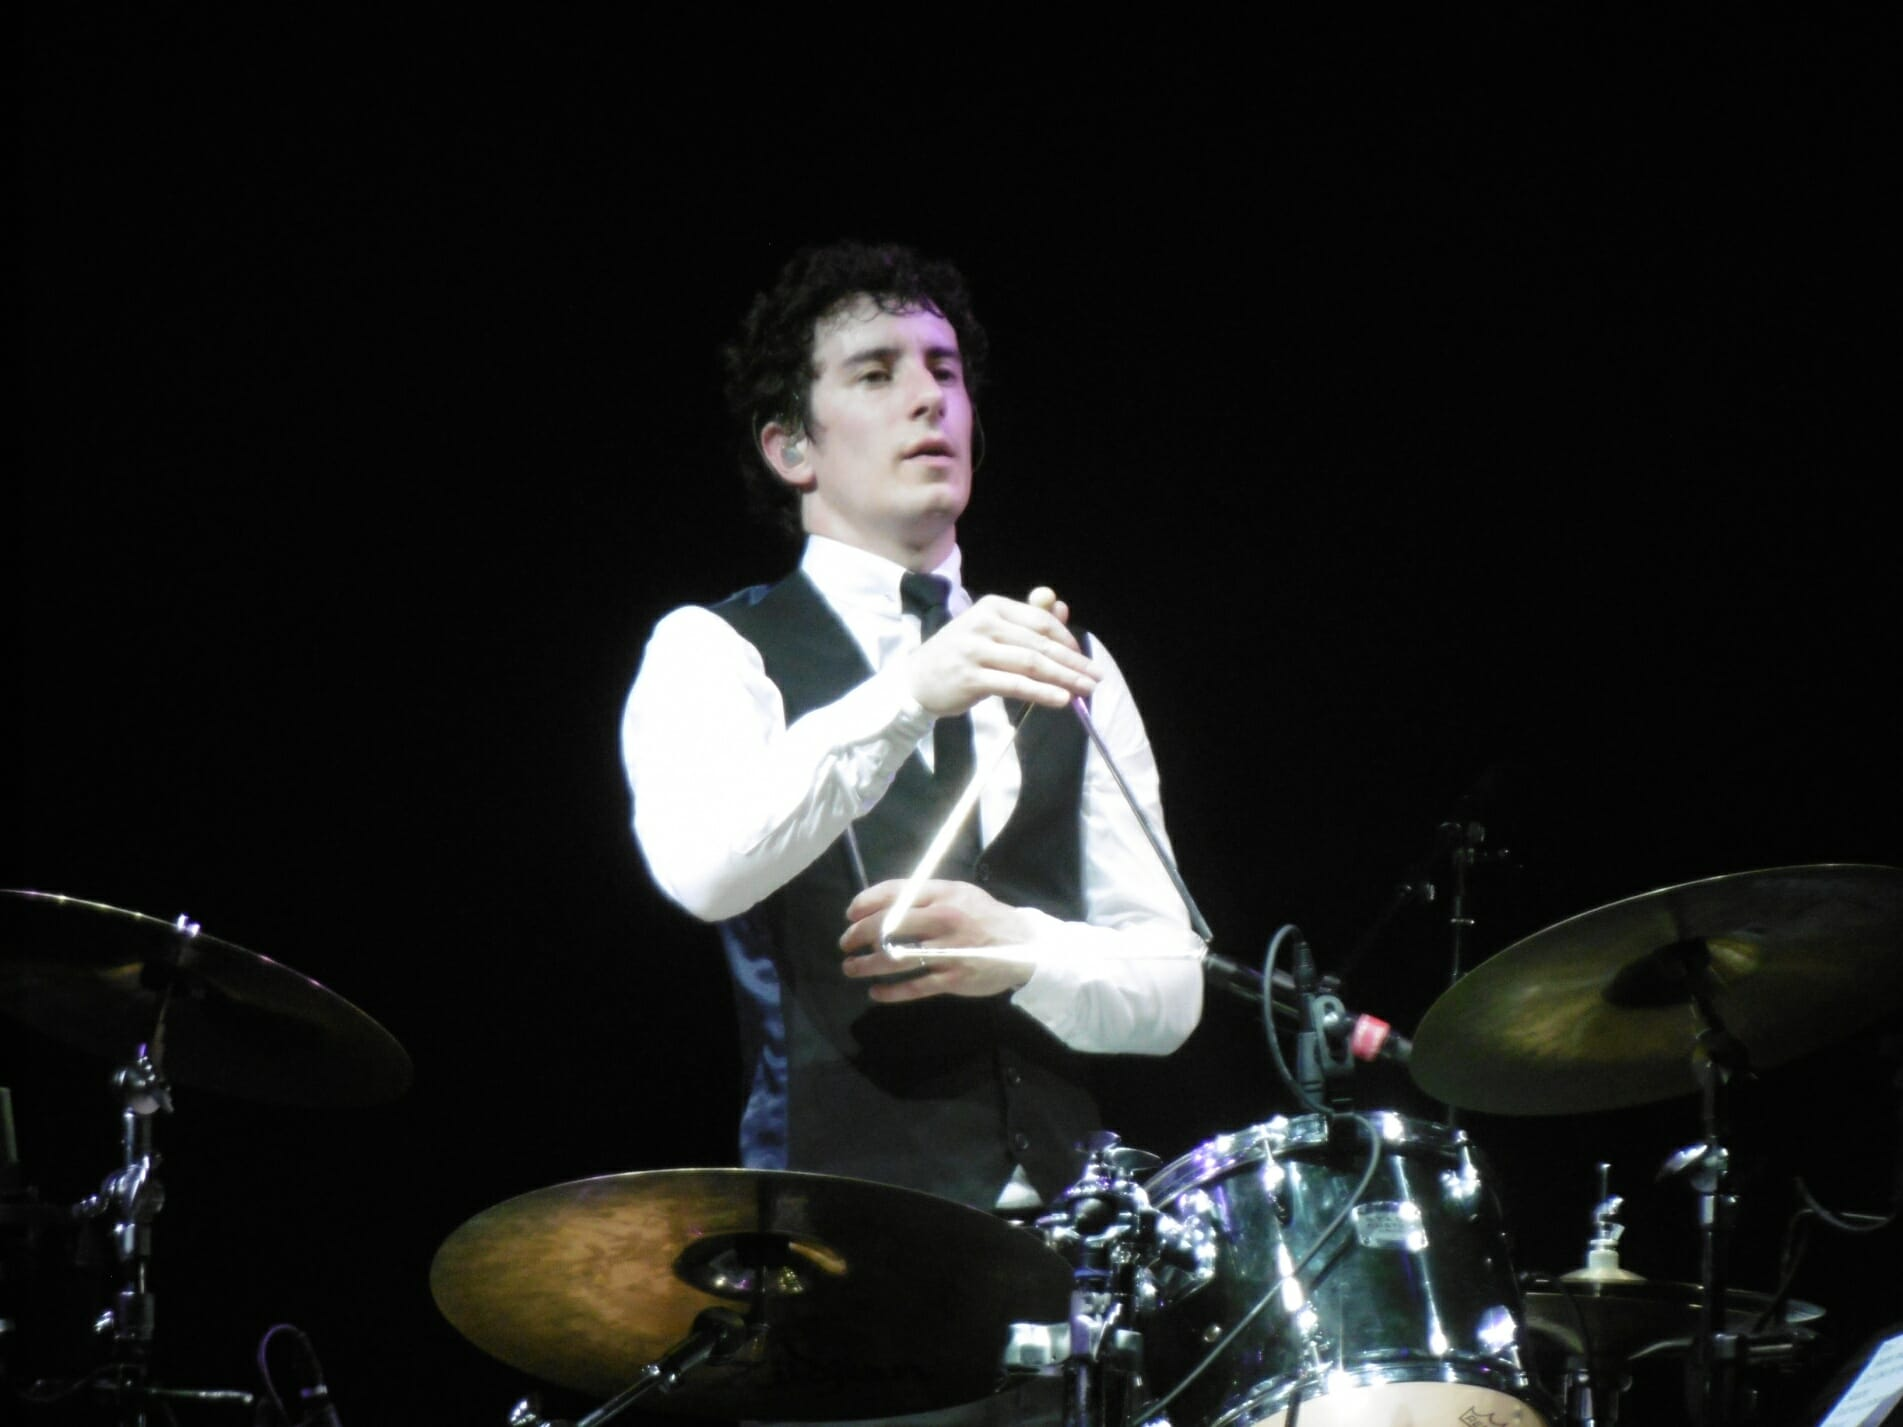 Simon small drummer, sixities show, sixites tribute, 60s tribute show, best 60s band, best 60s tribute, 1960s tribute, 60s tribute